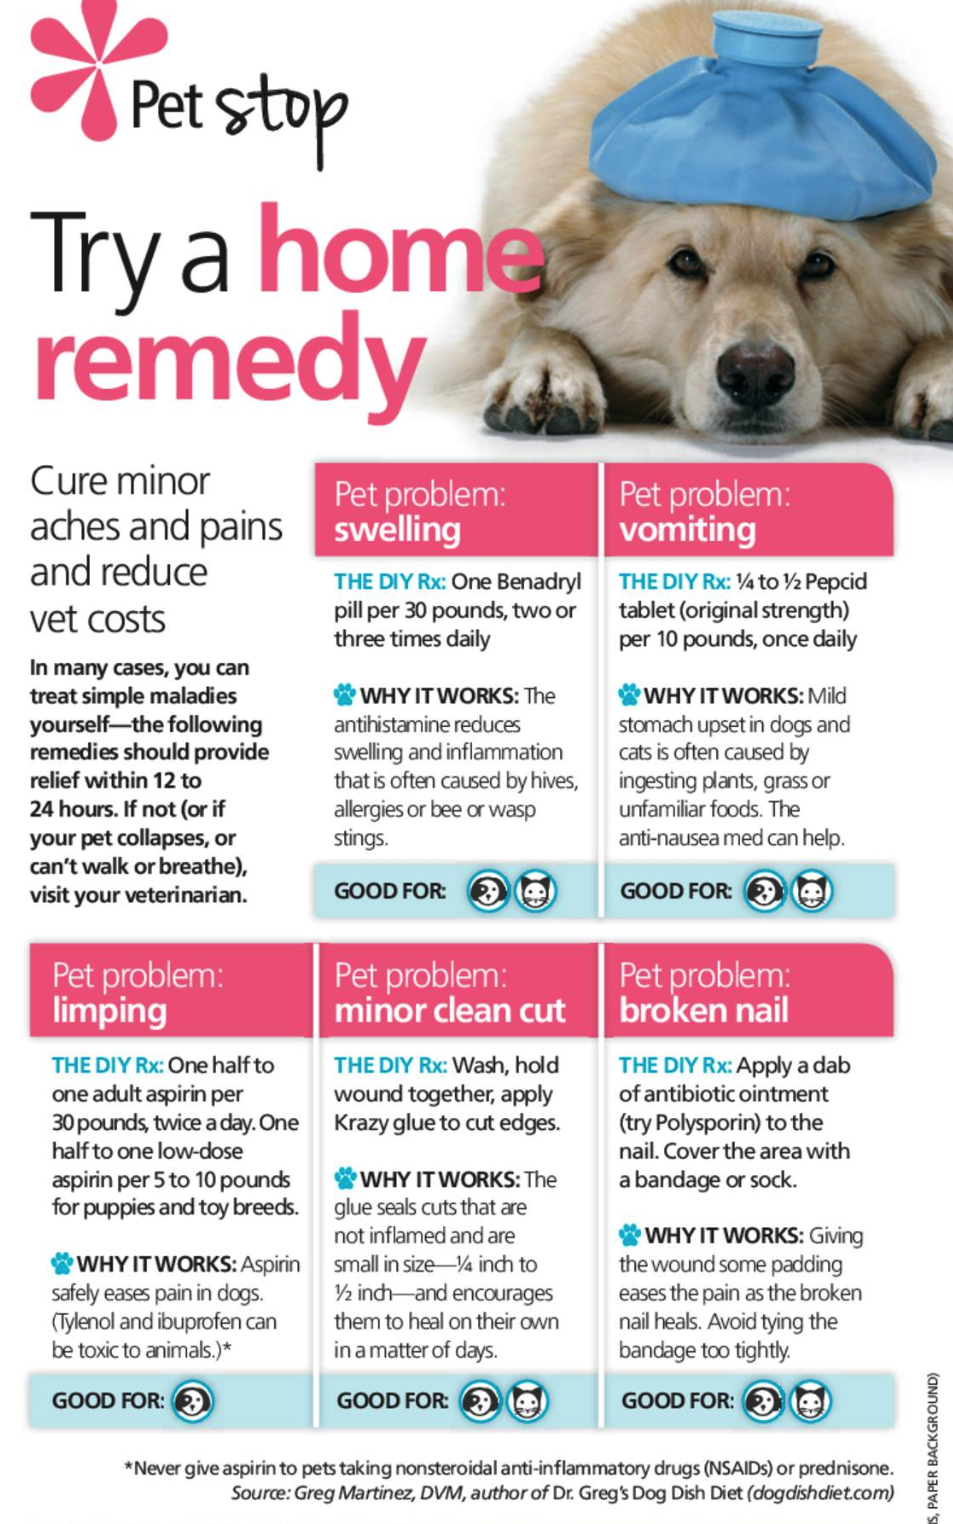 Dogs Stuff Want Great Ideas About Dogs Look Here Learn More By Visiting The Image Link Dogsstuff Dog Care Dog Remedies Pets